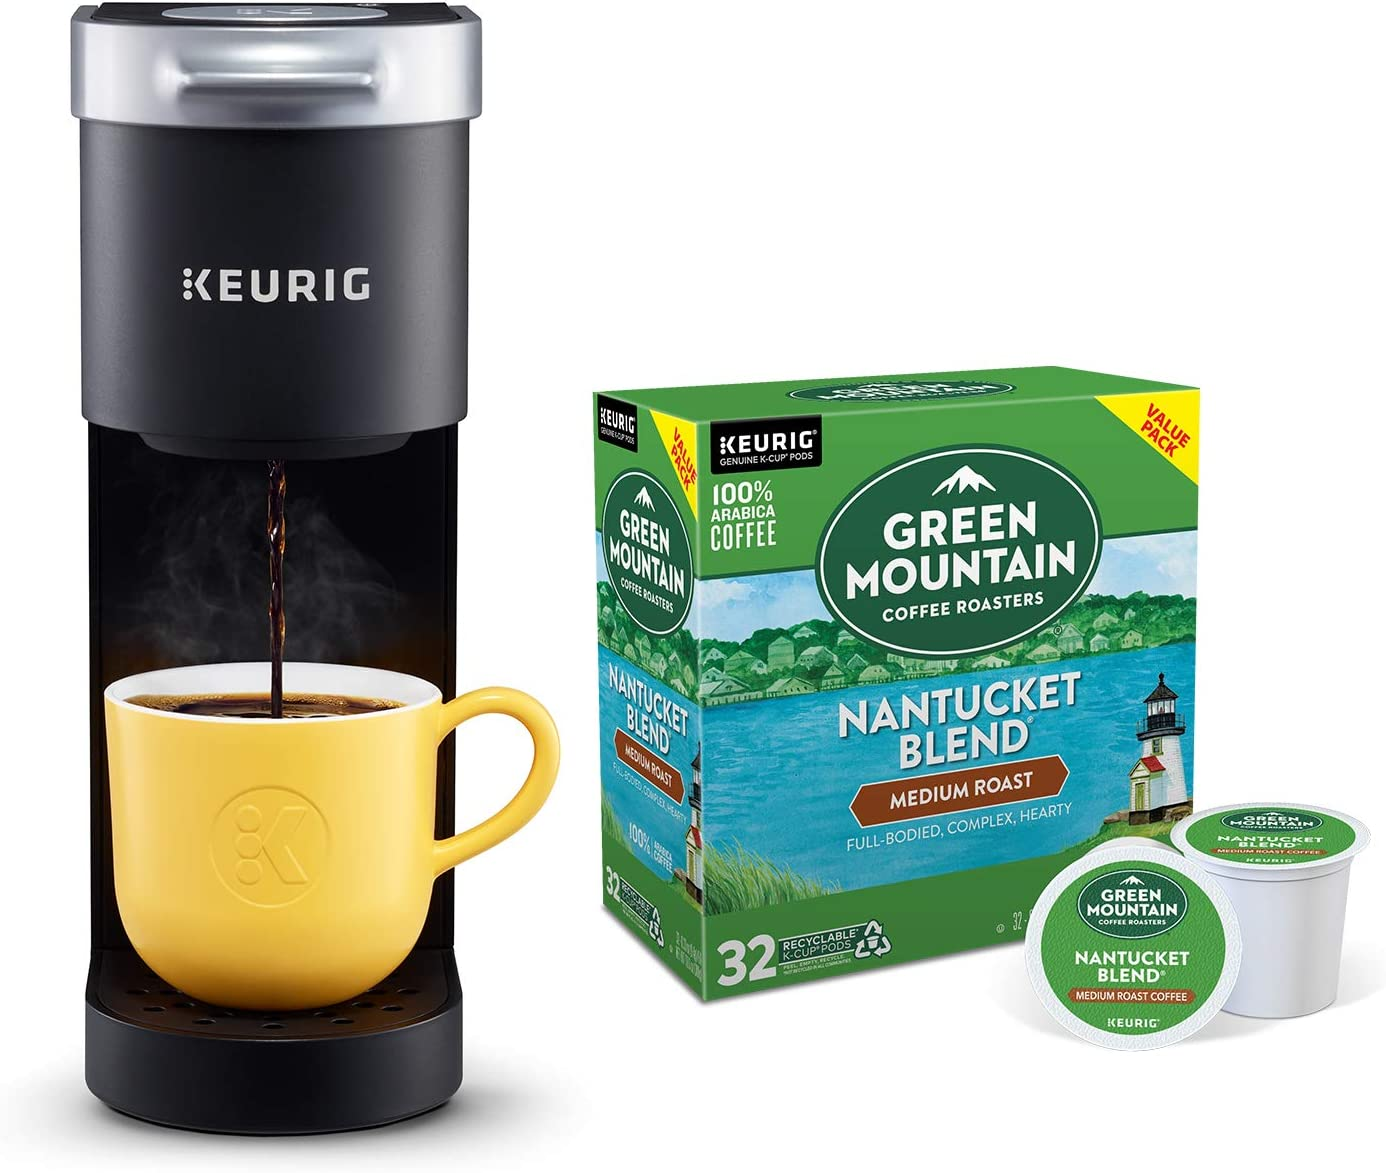 Keurig K-Mini Single Serve Coffee Maker with Green Mountain Coffee Roasters Nantucket Blend, Medium Roast, 32 ct K-Cup Coffee Pods